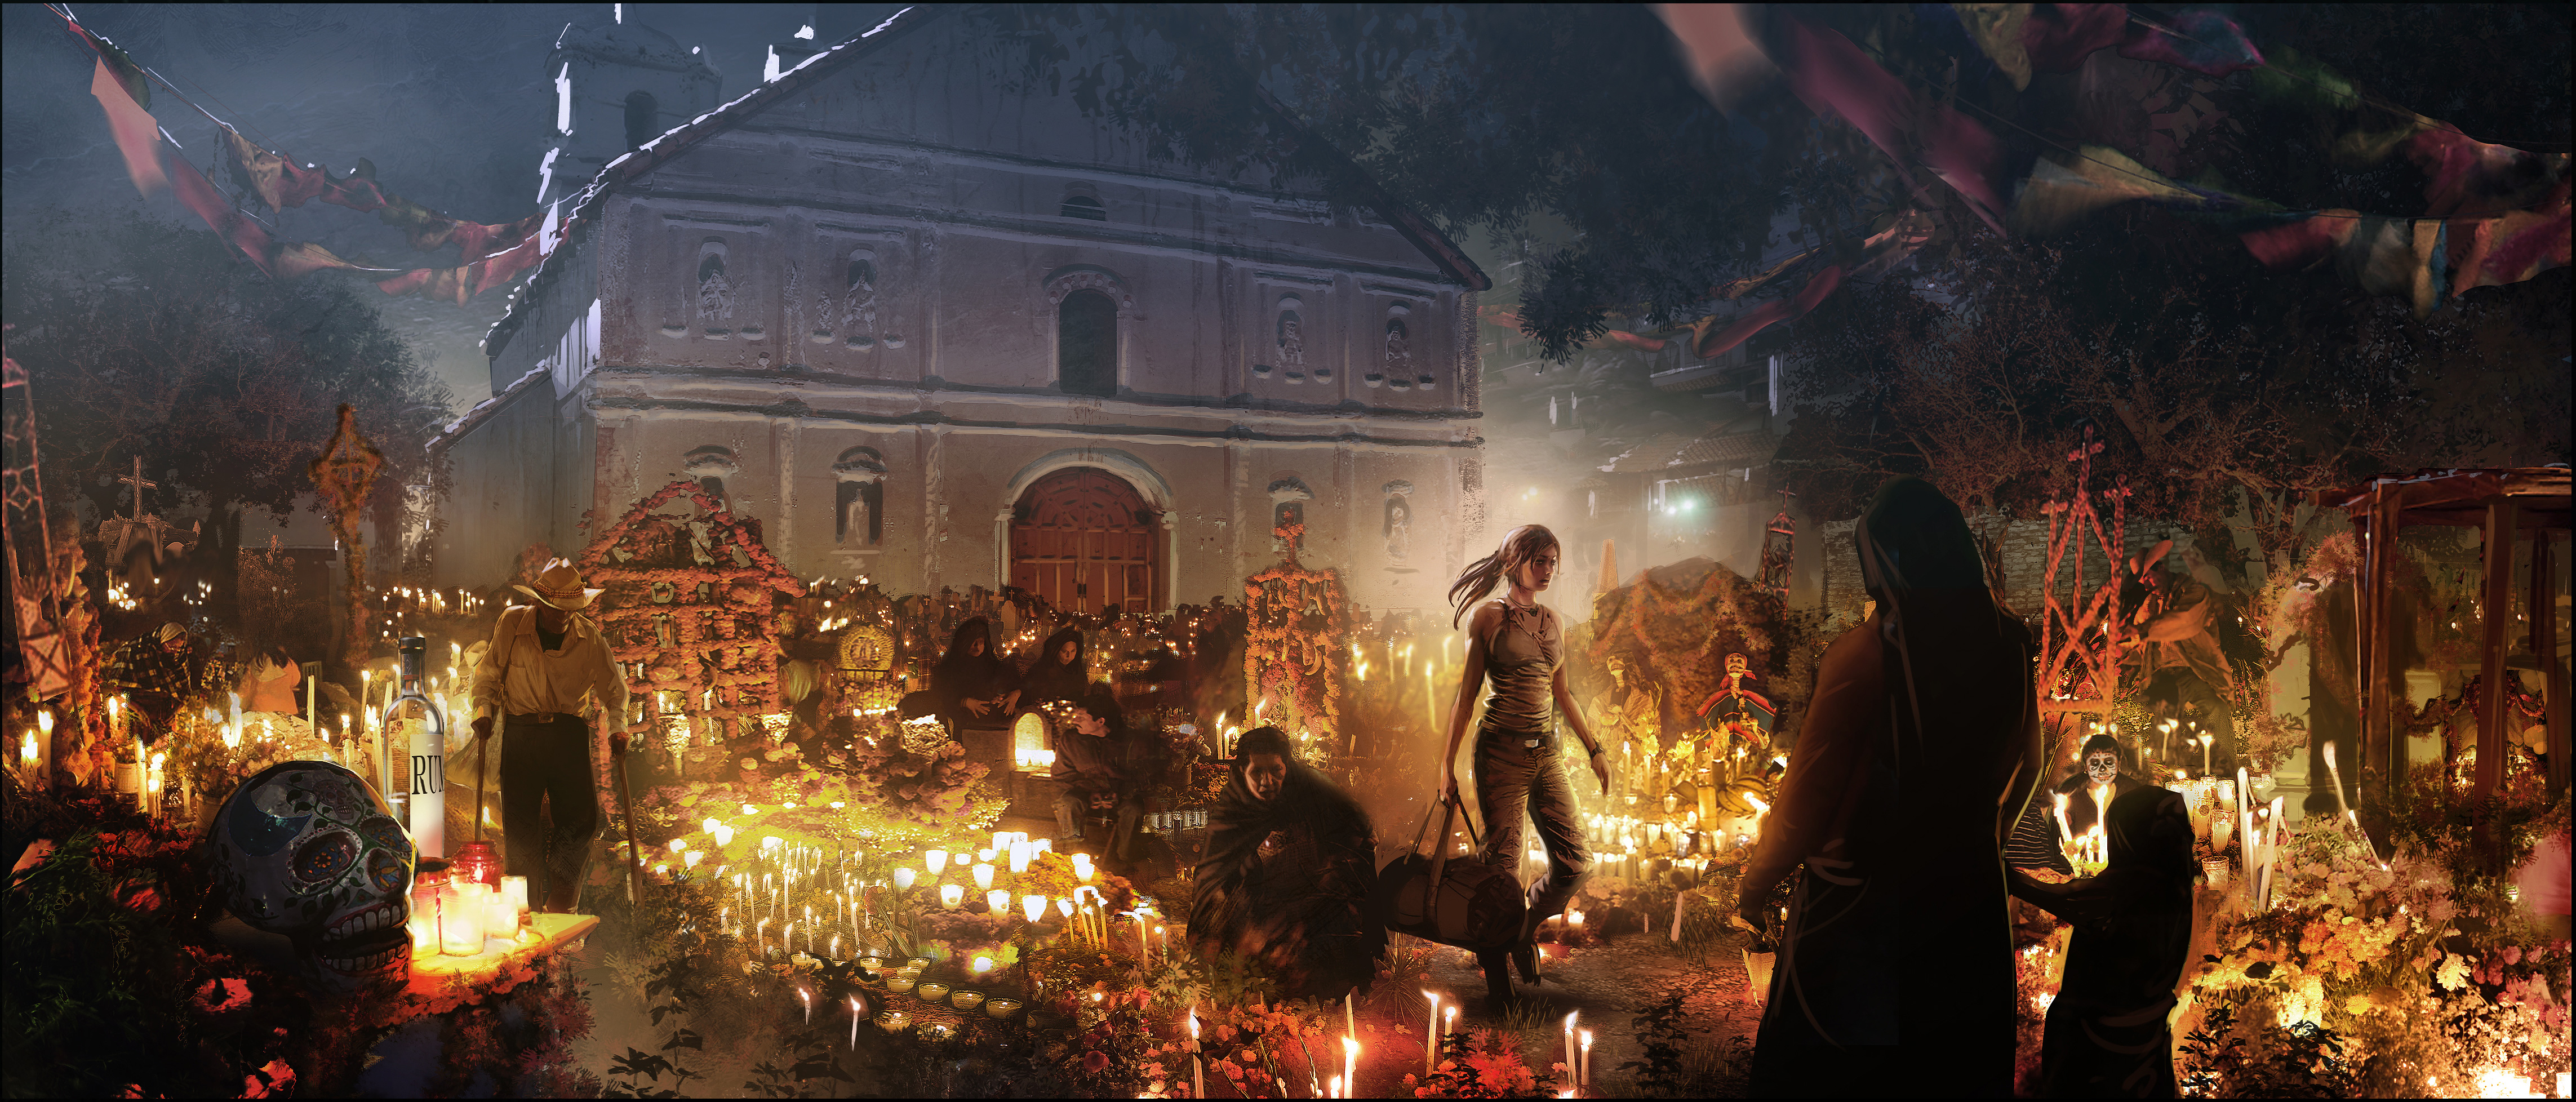 Shadow Of The Tomb Raider Concept Art: Shadow Of The Tomb Raider Concept Art 4k, HD Games, 4k